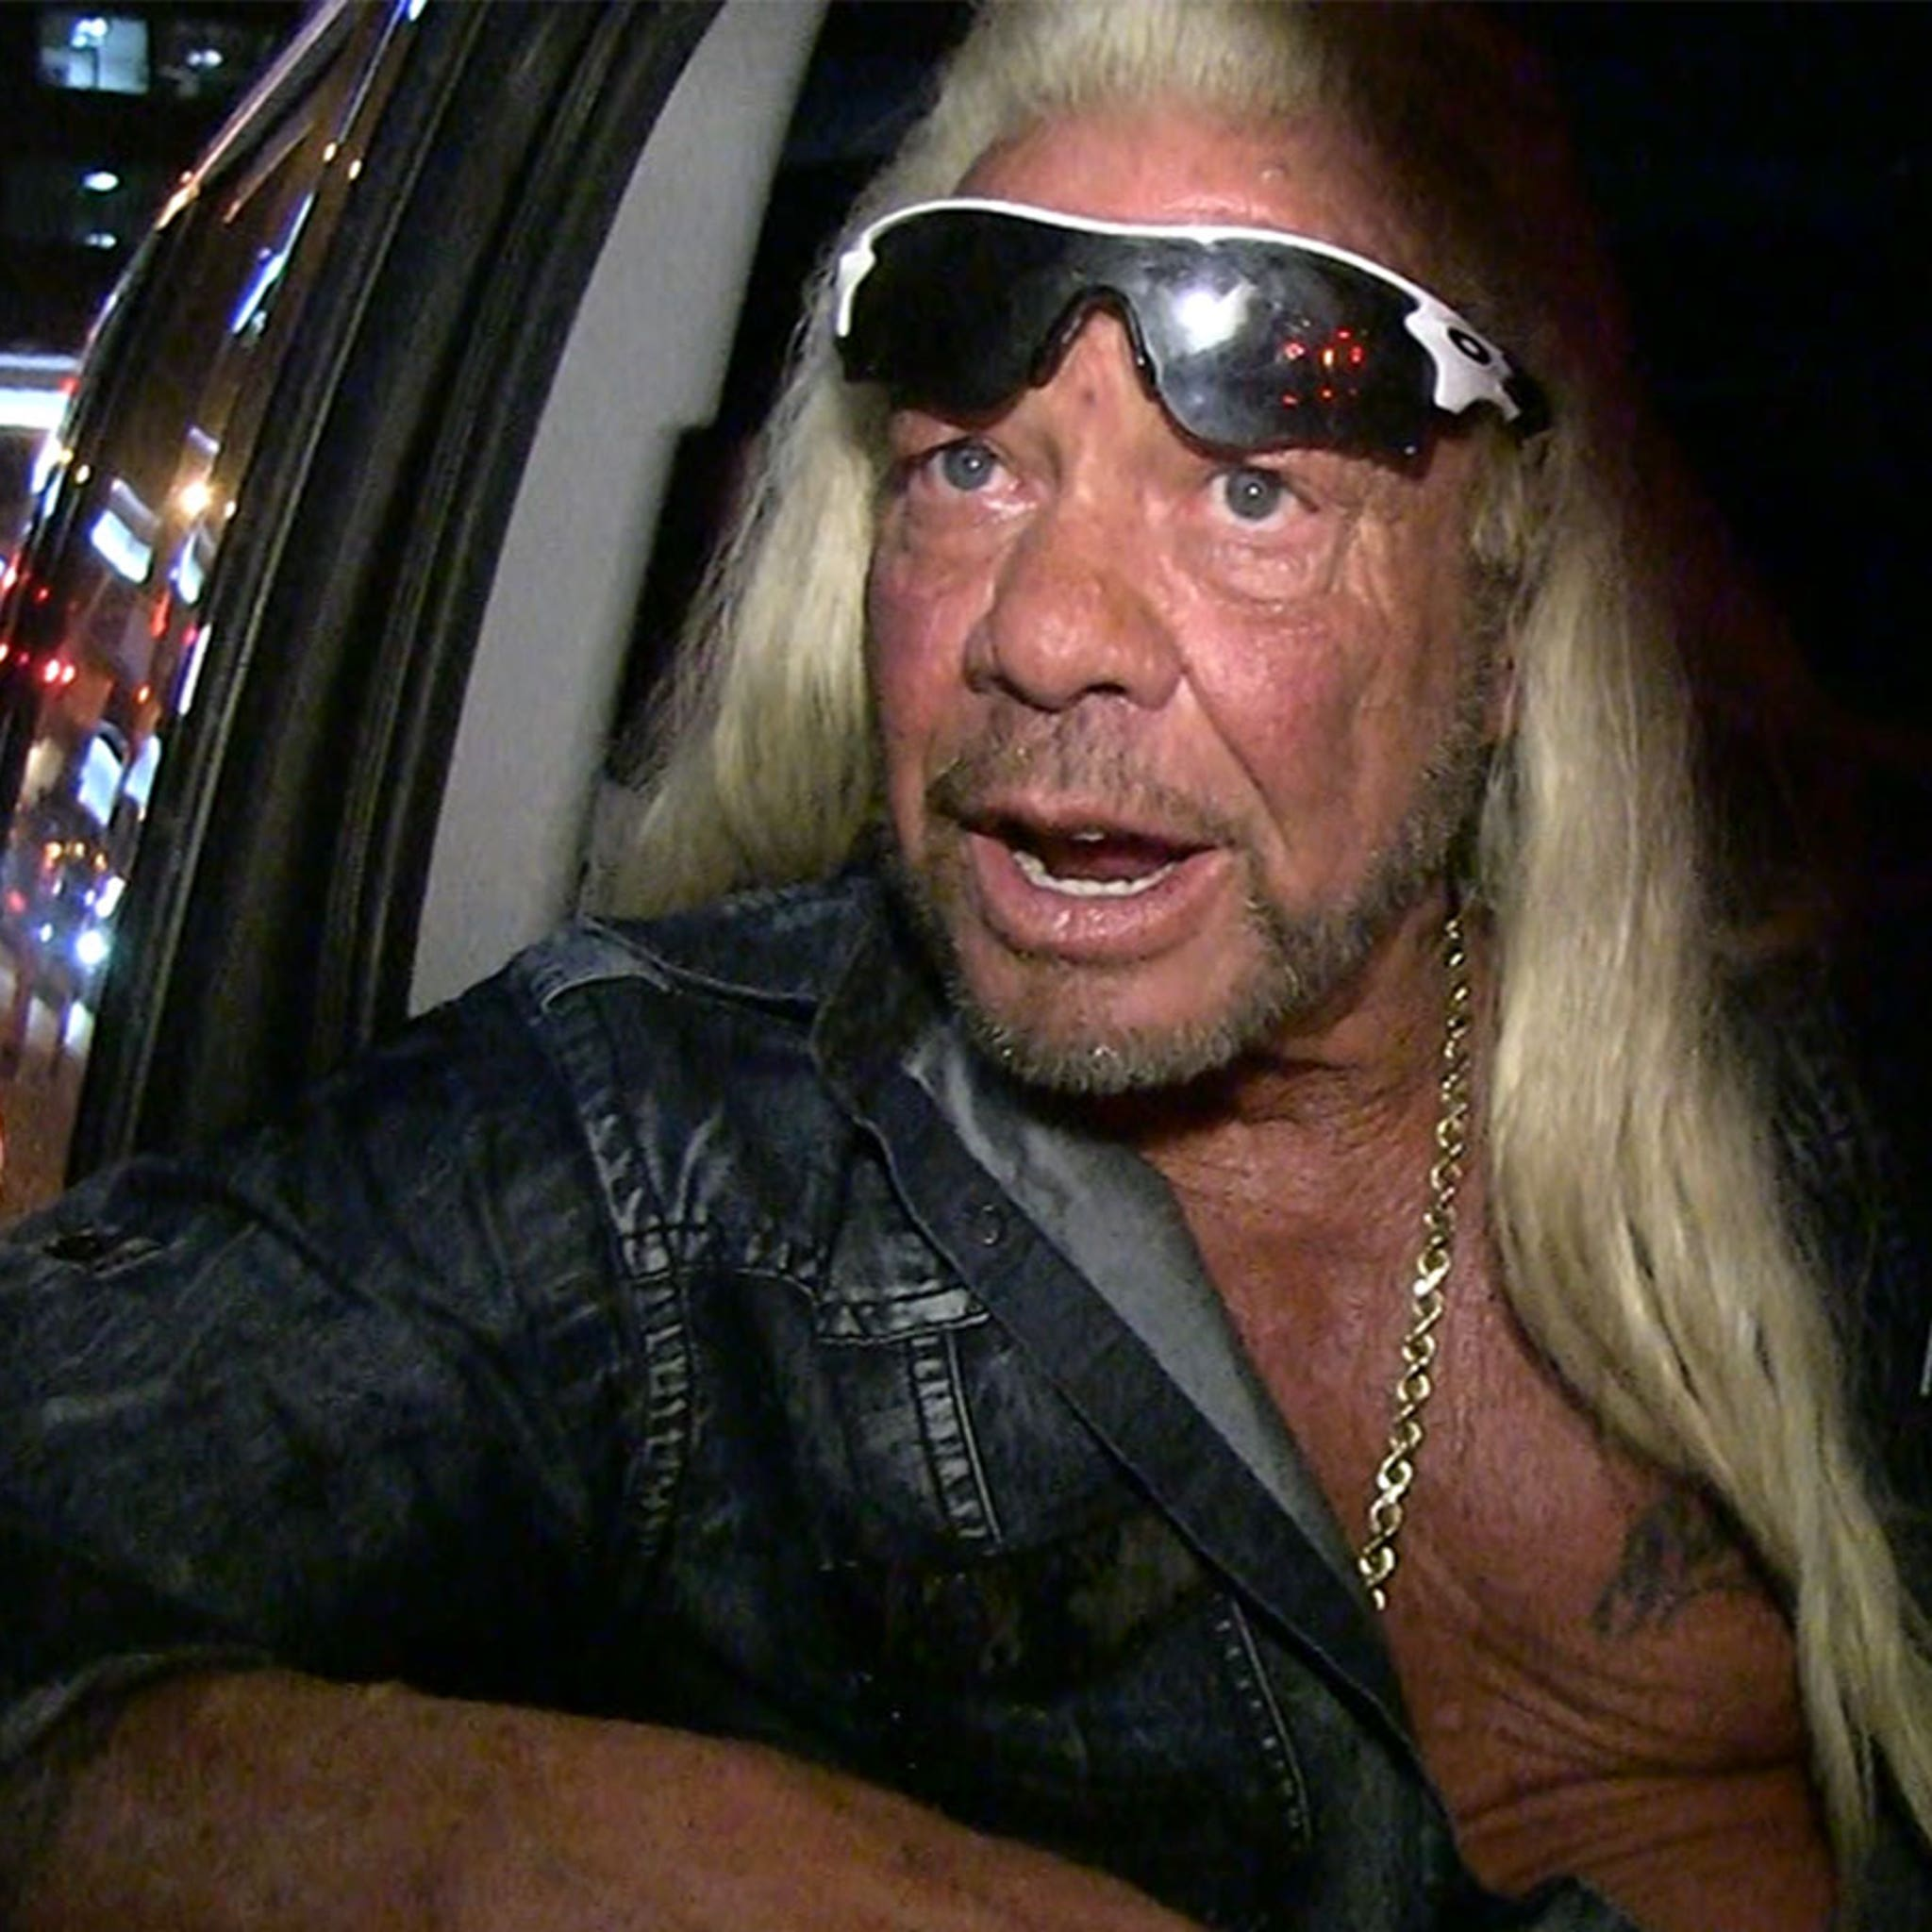 Dog the Bounty Hunter Explains Why Burglary Might've Been an